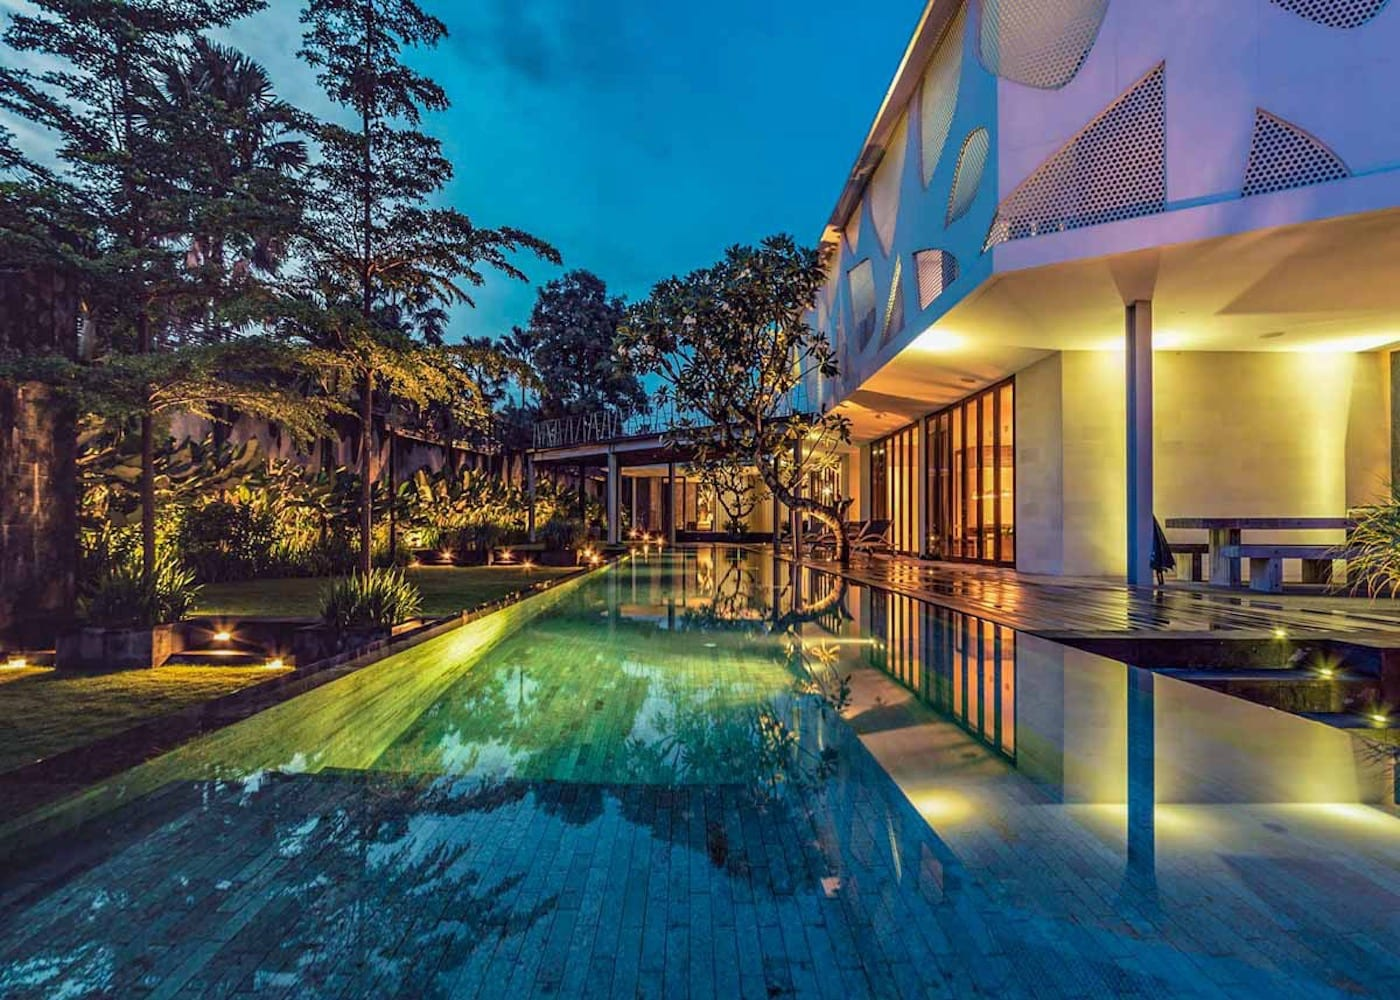 Inside Villa Issi - one of the best private villas in Seminyak, Bali, Indonesia